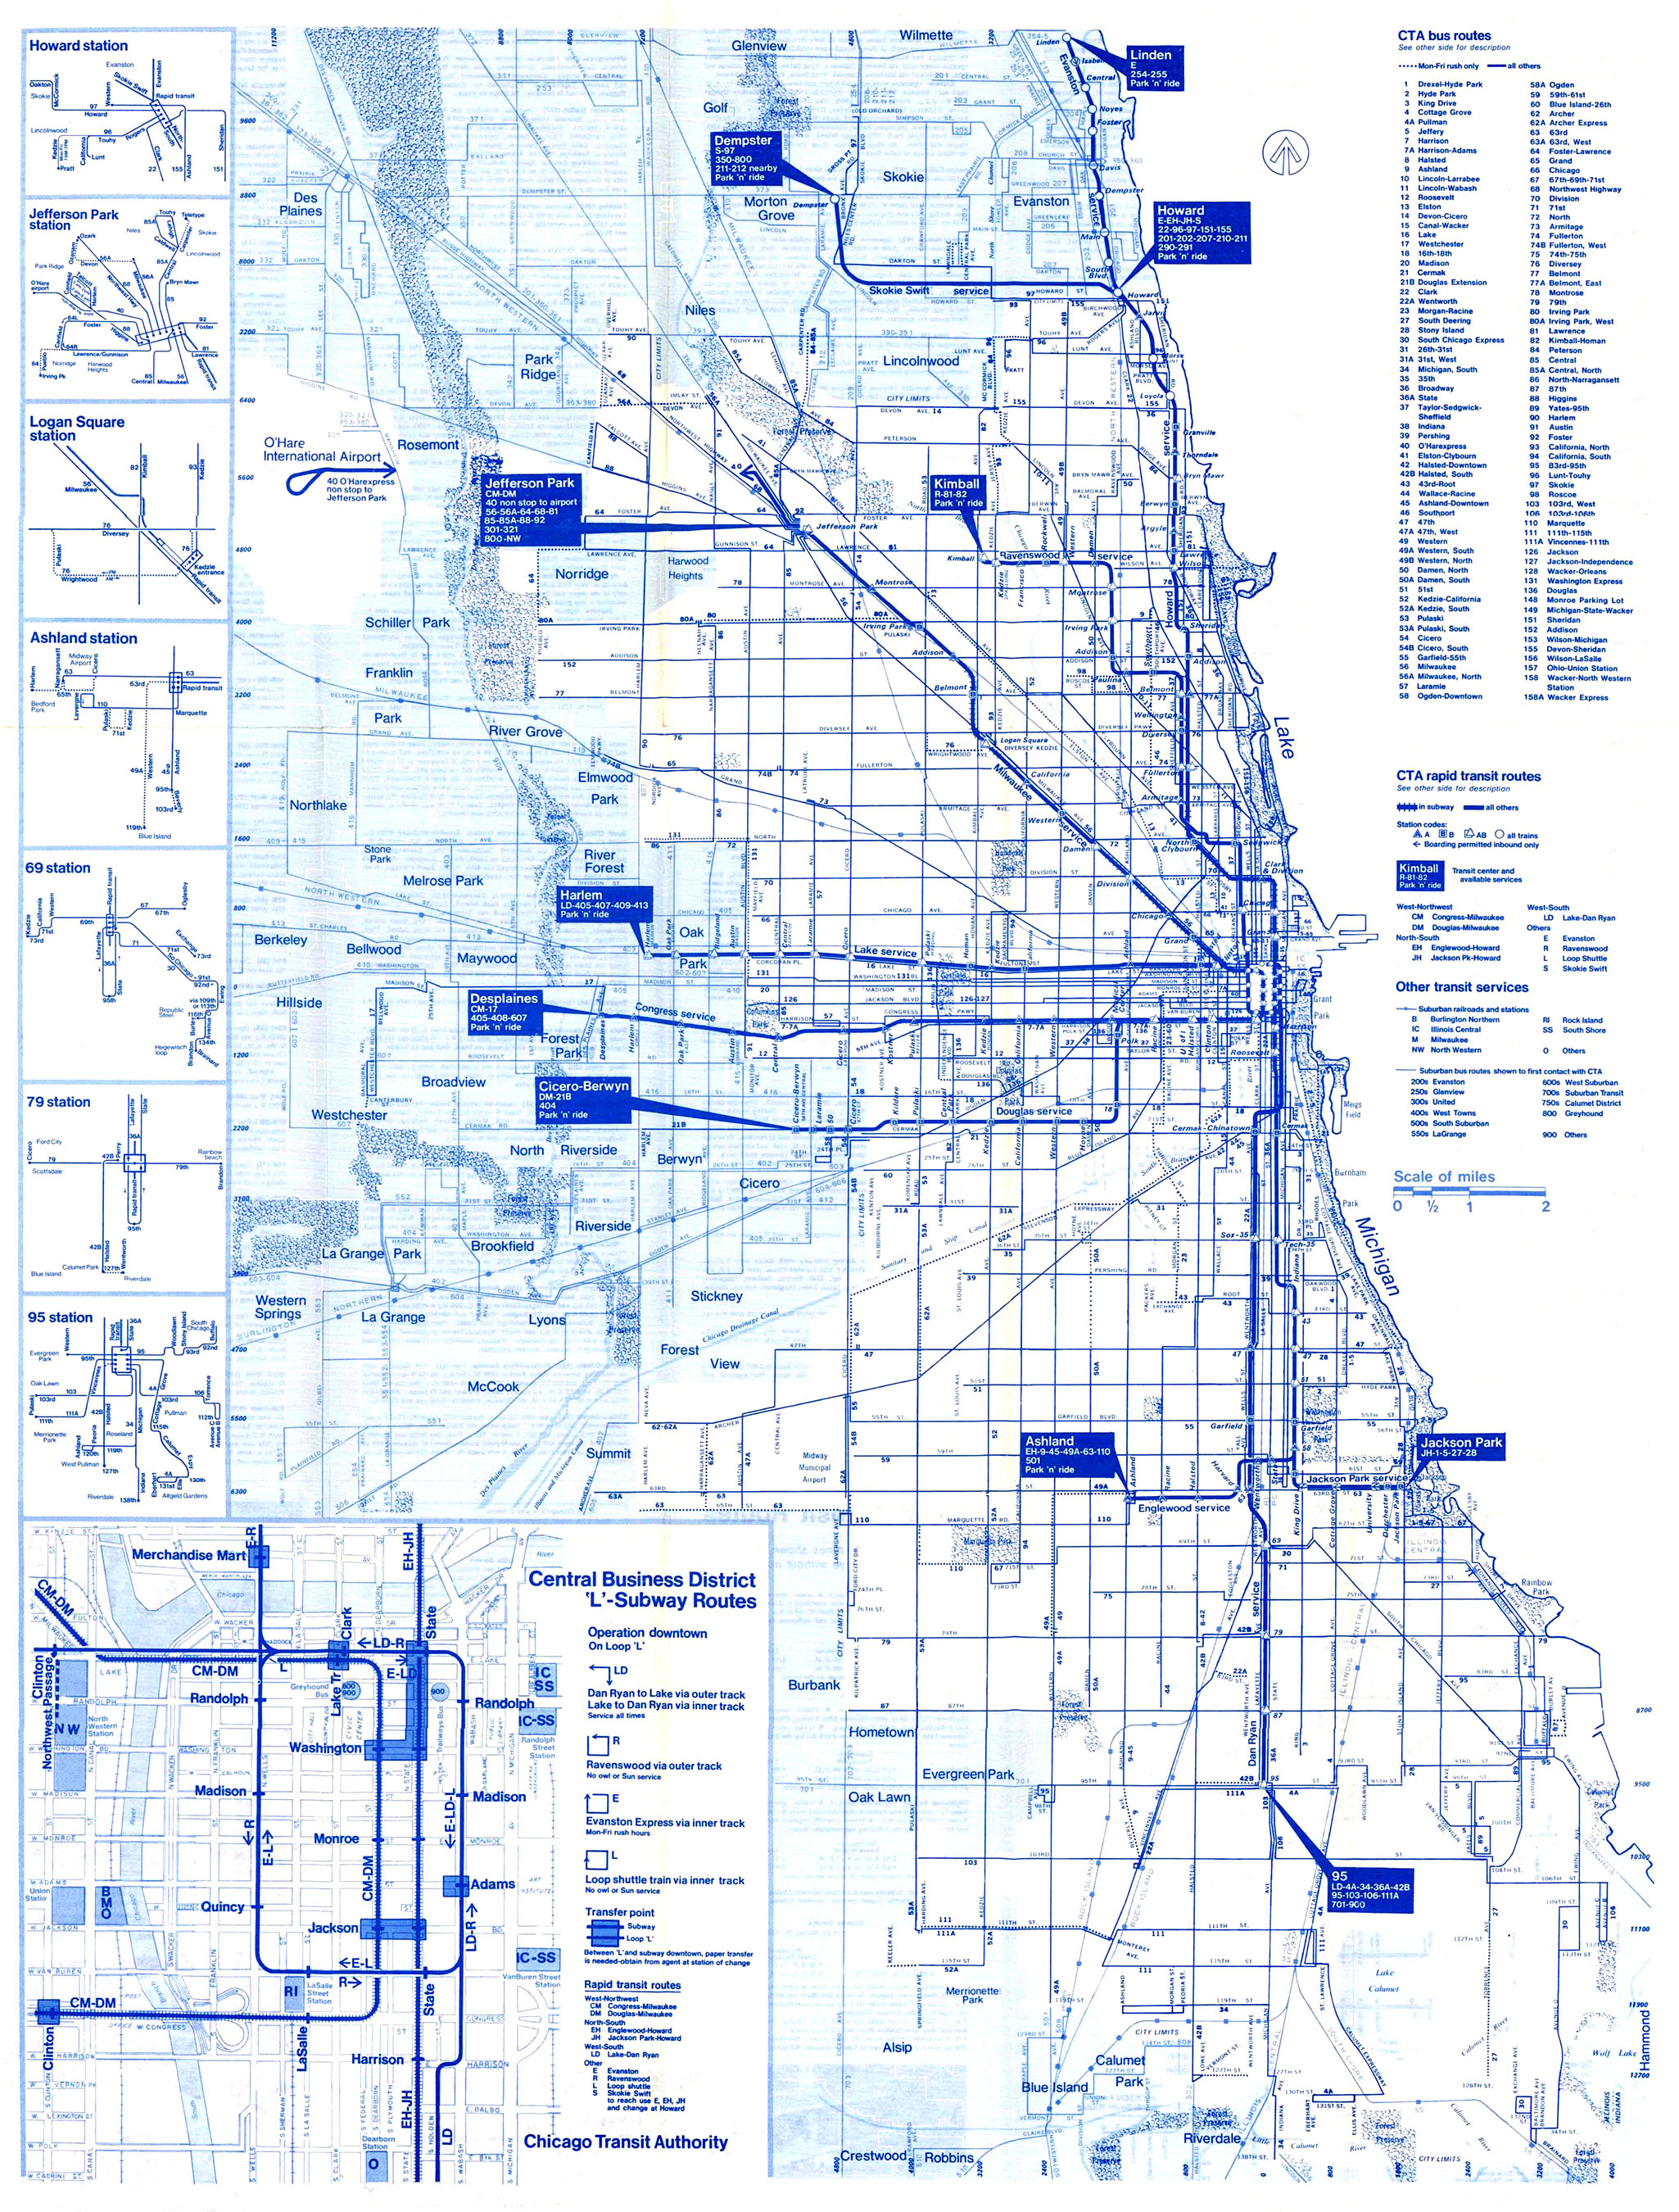 Evanston Subway Map.Chicago L Org System Maps Route Maps